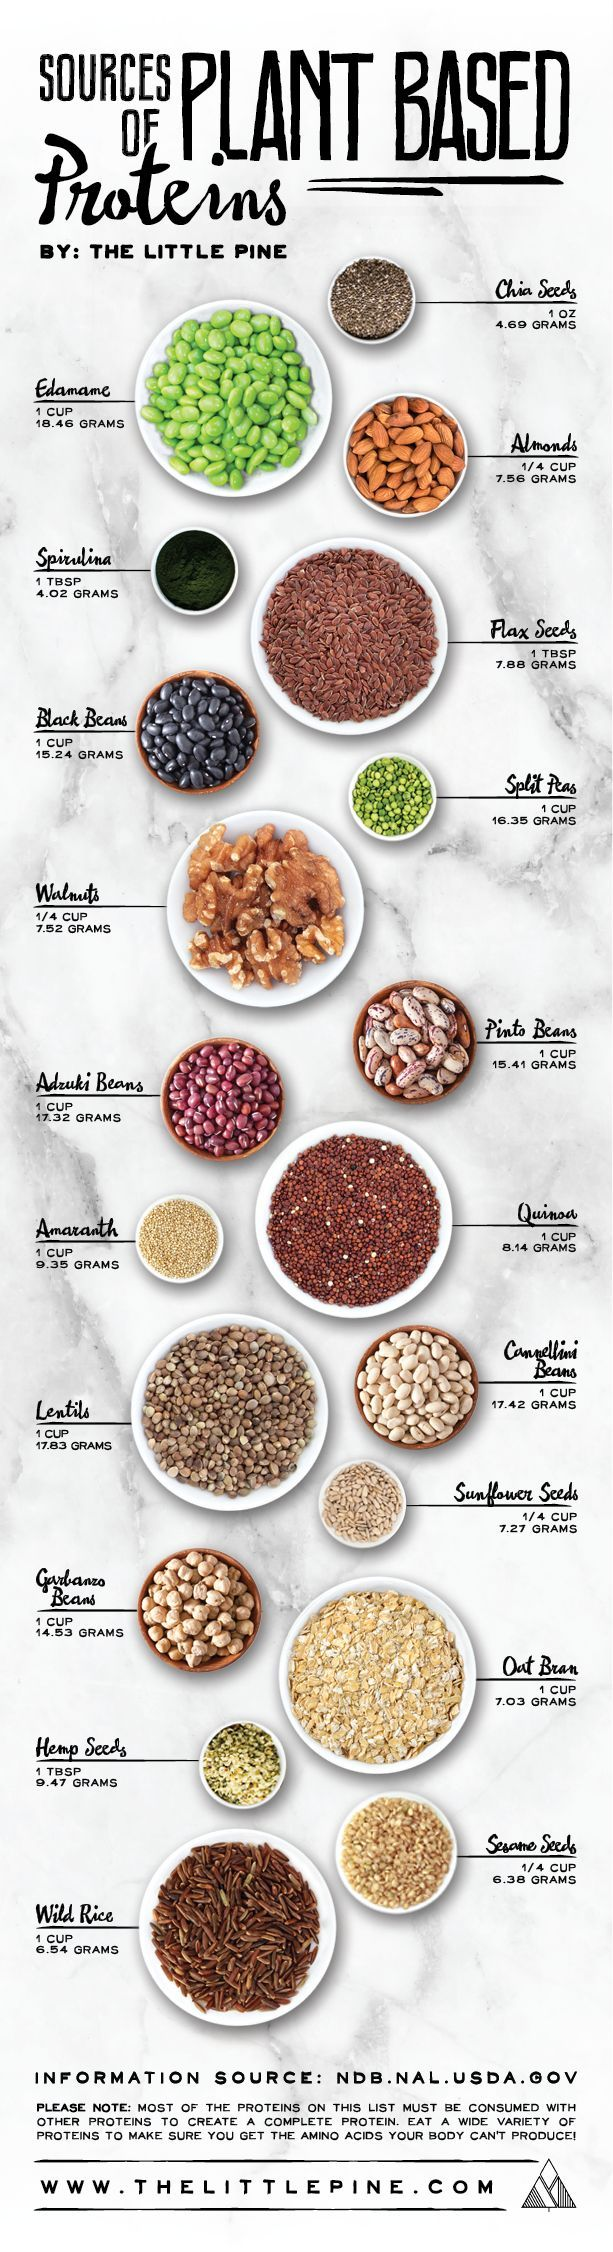 For Recipes of Delicious Food made with these sources of Proteins, please visit http://tastesofhealth.eu http://tastesofhealth.eu